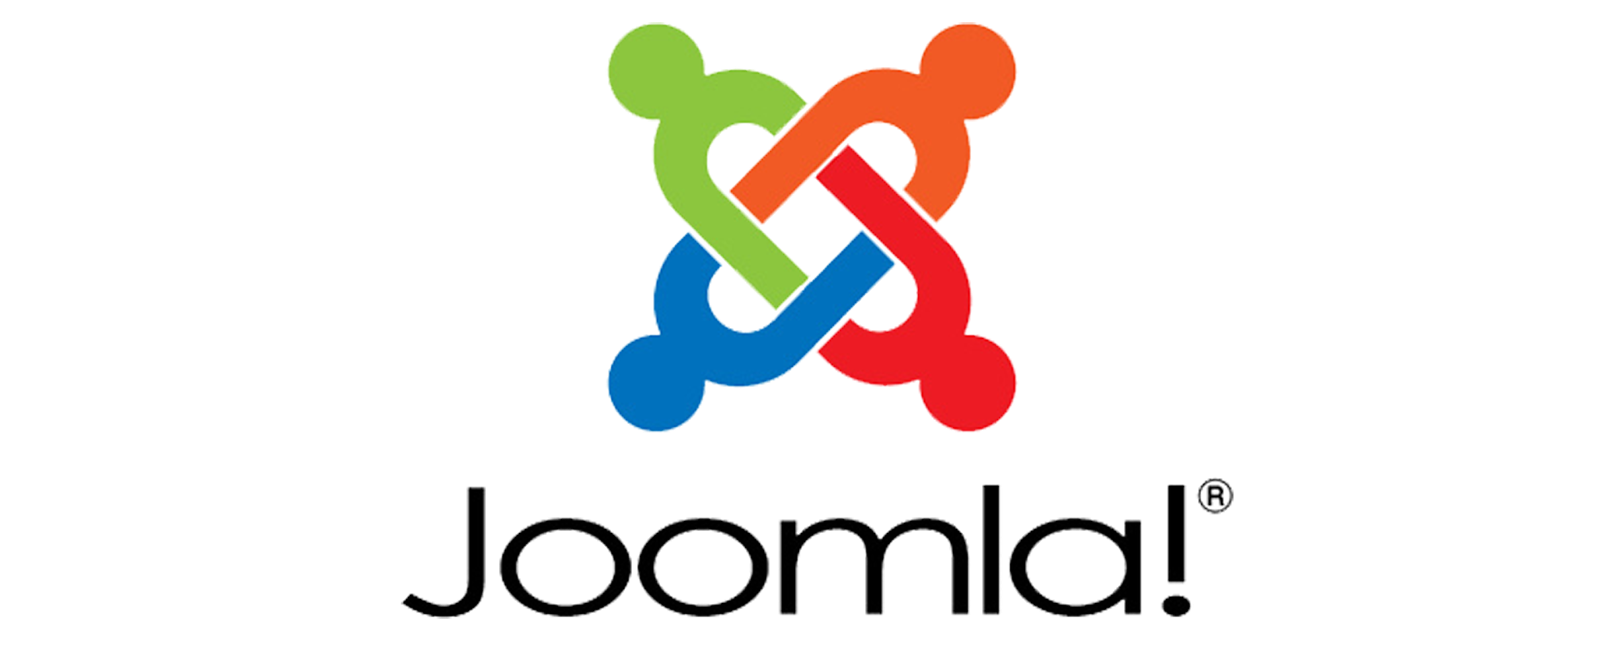 how to install joomla template